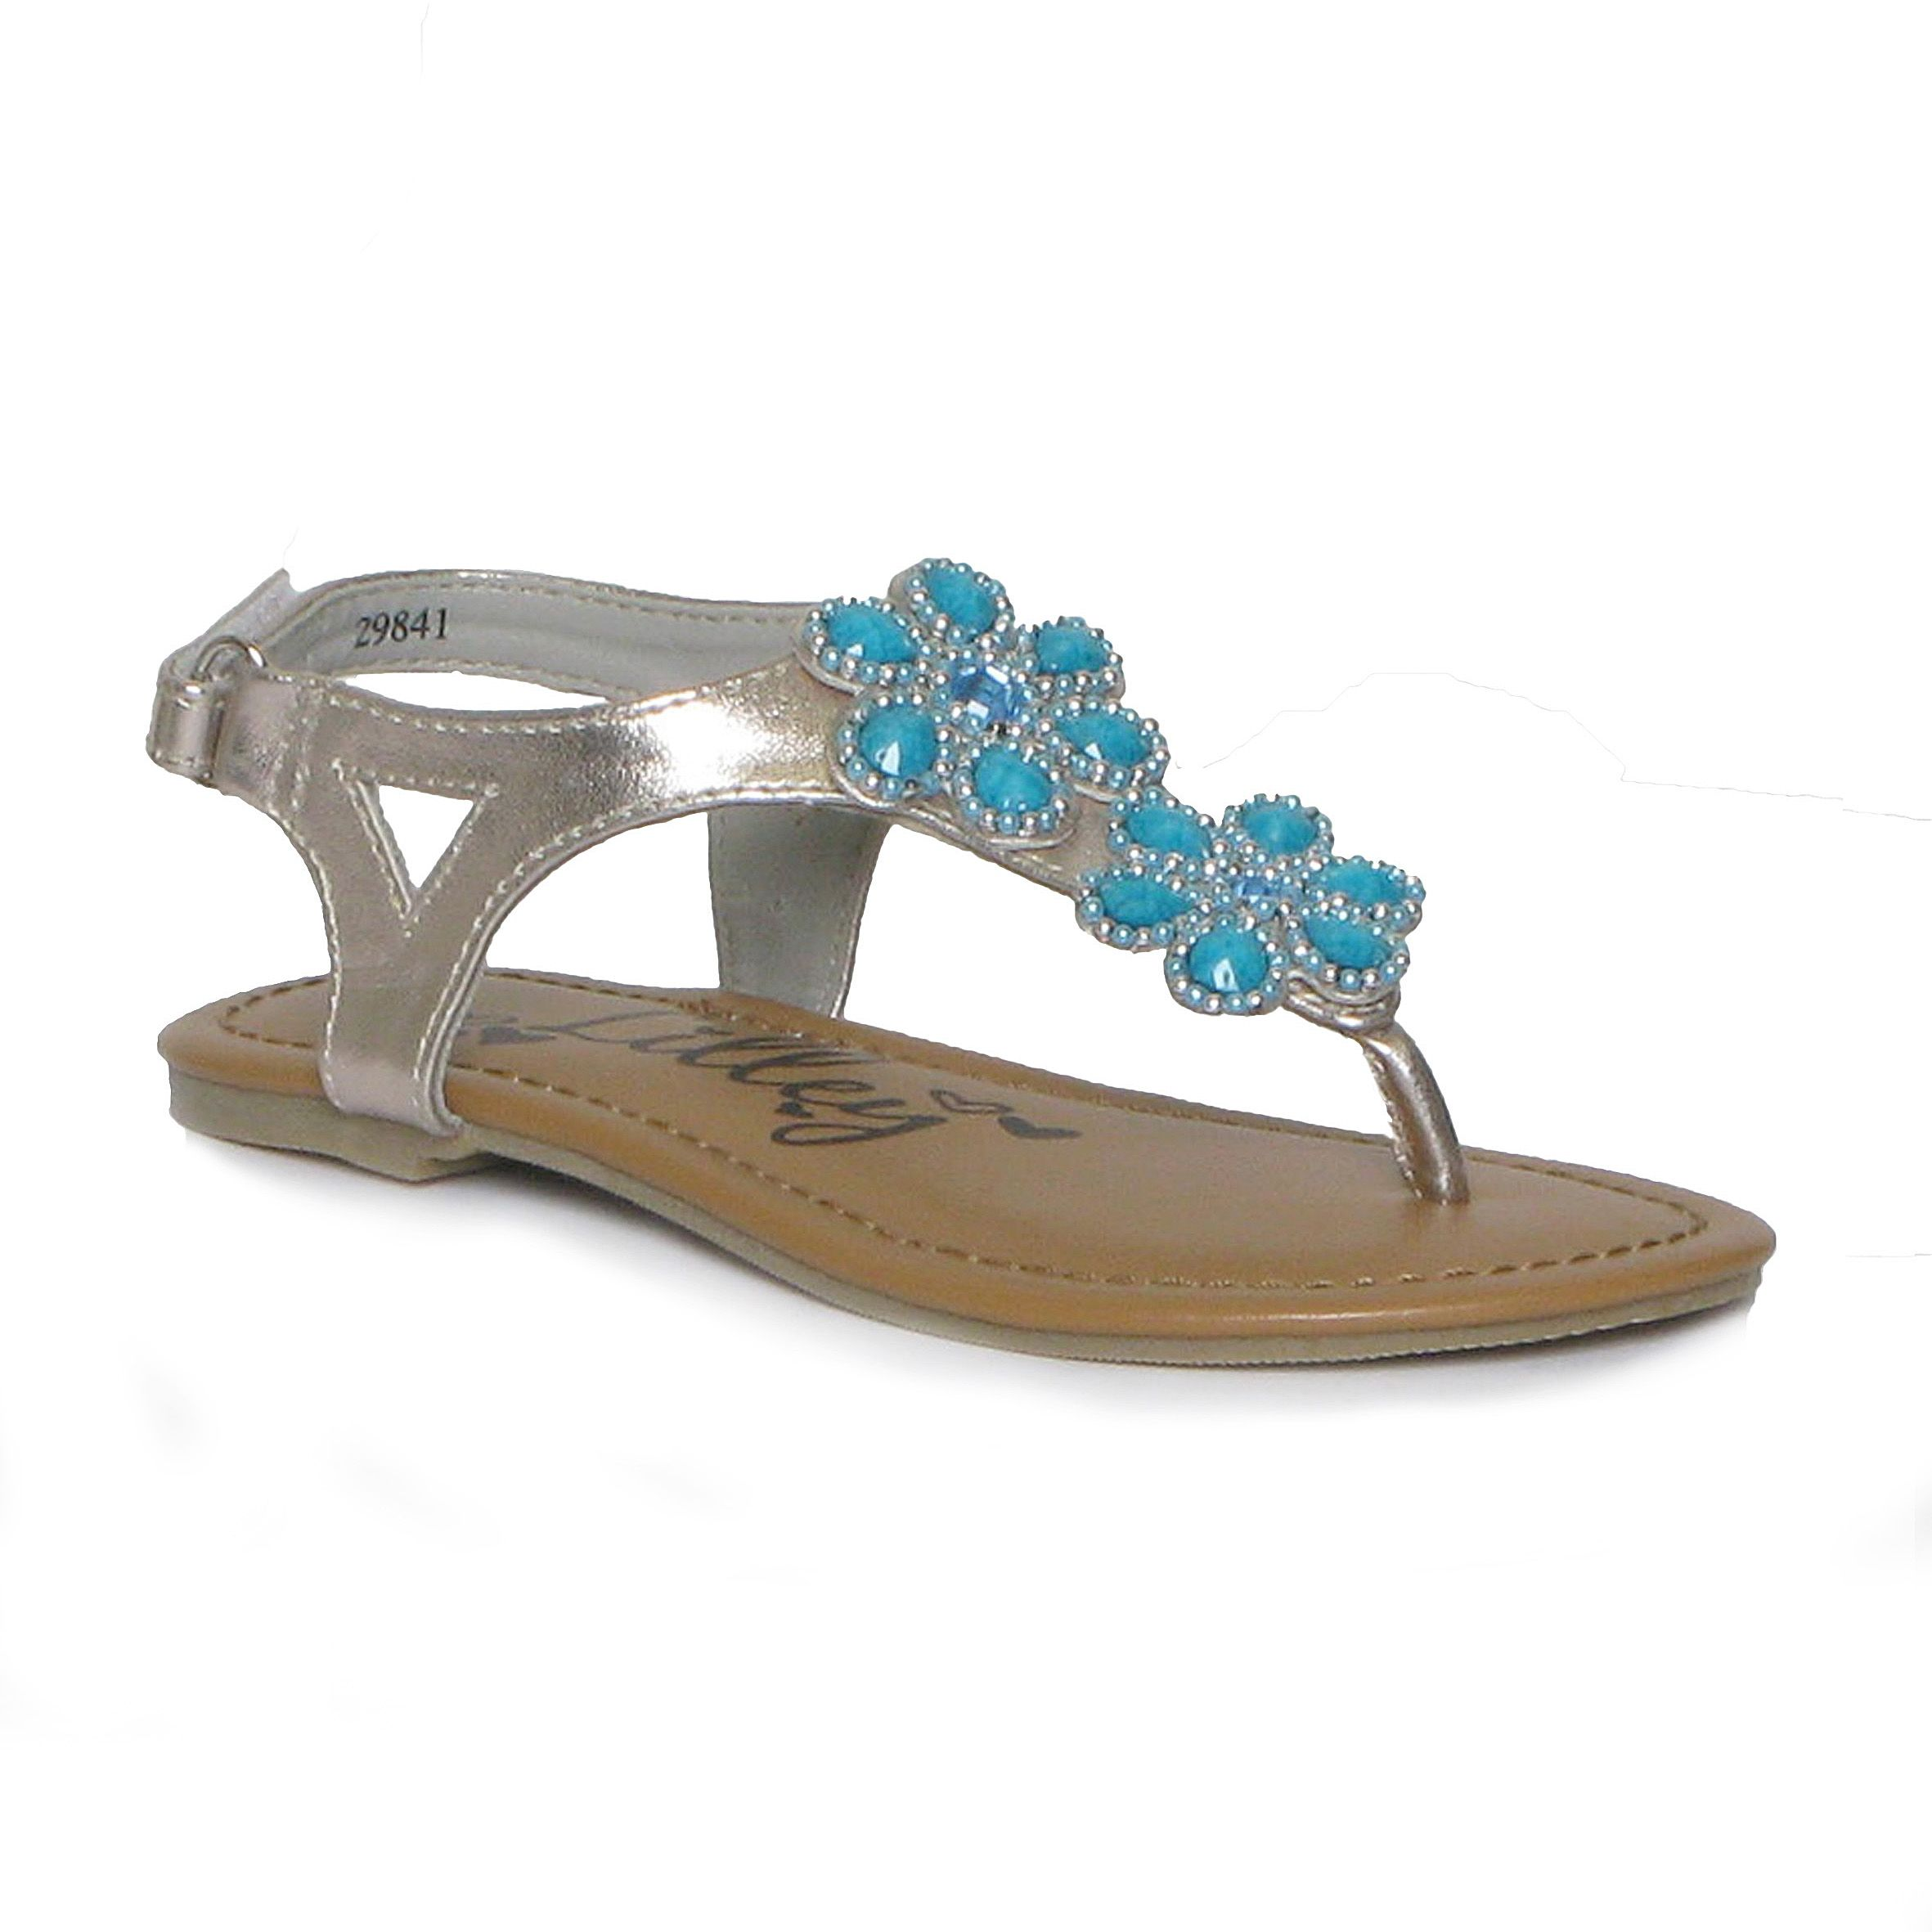 5a1090ebe221 29841 £6.49 www.shoezone.com irls Silver Toe Post Sandal with Turquoise  Beaded Flower Detail  girls  summer  sandal  silver  turquoise  flowers   beads ...